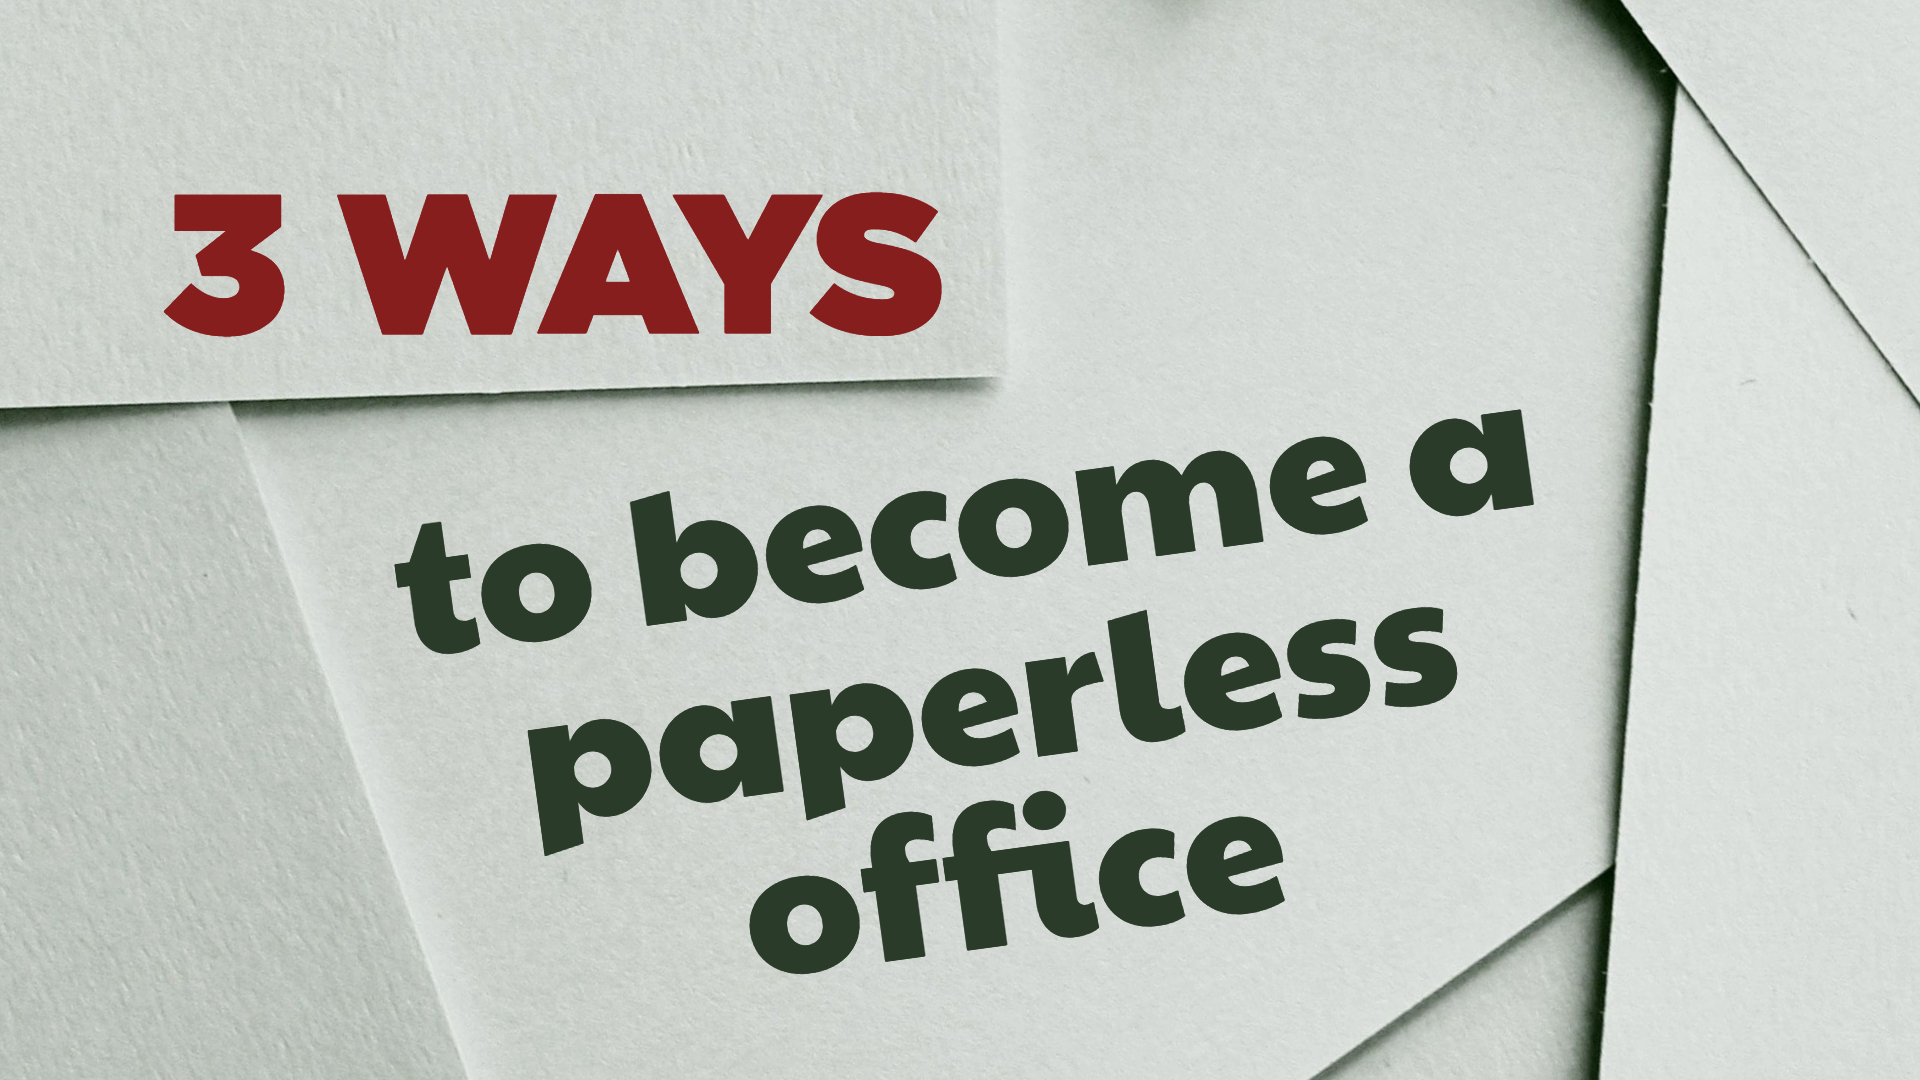 3 ways to become a paperless office